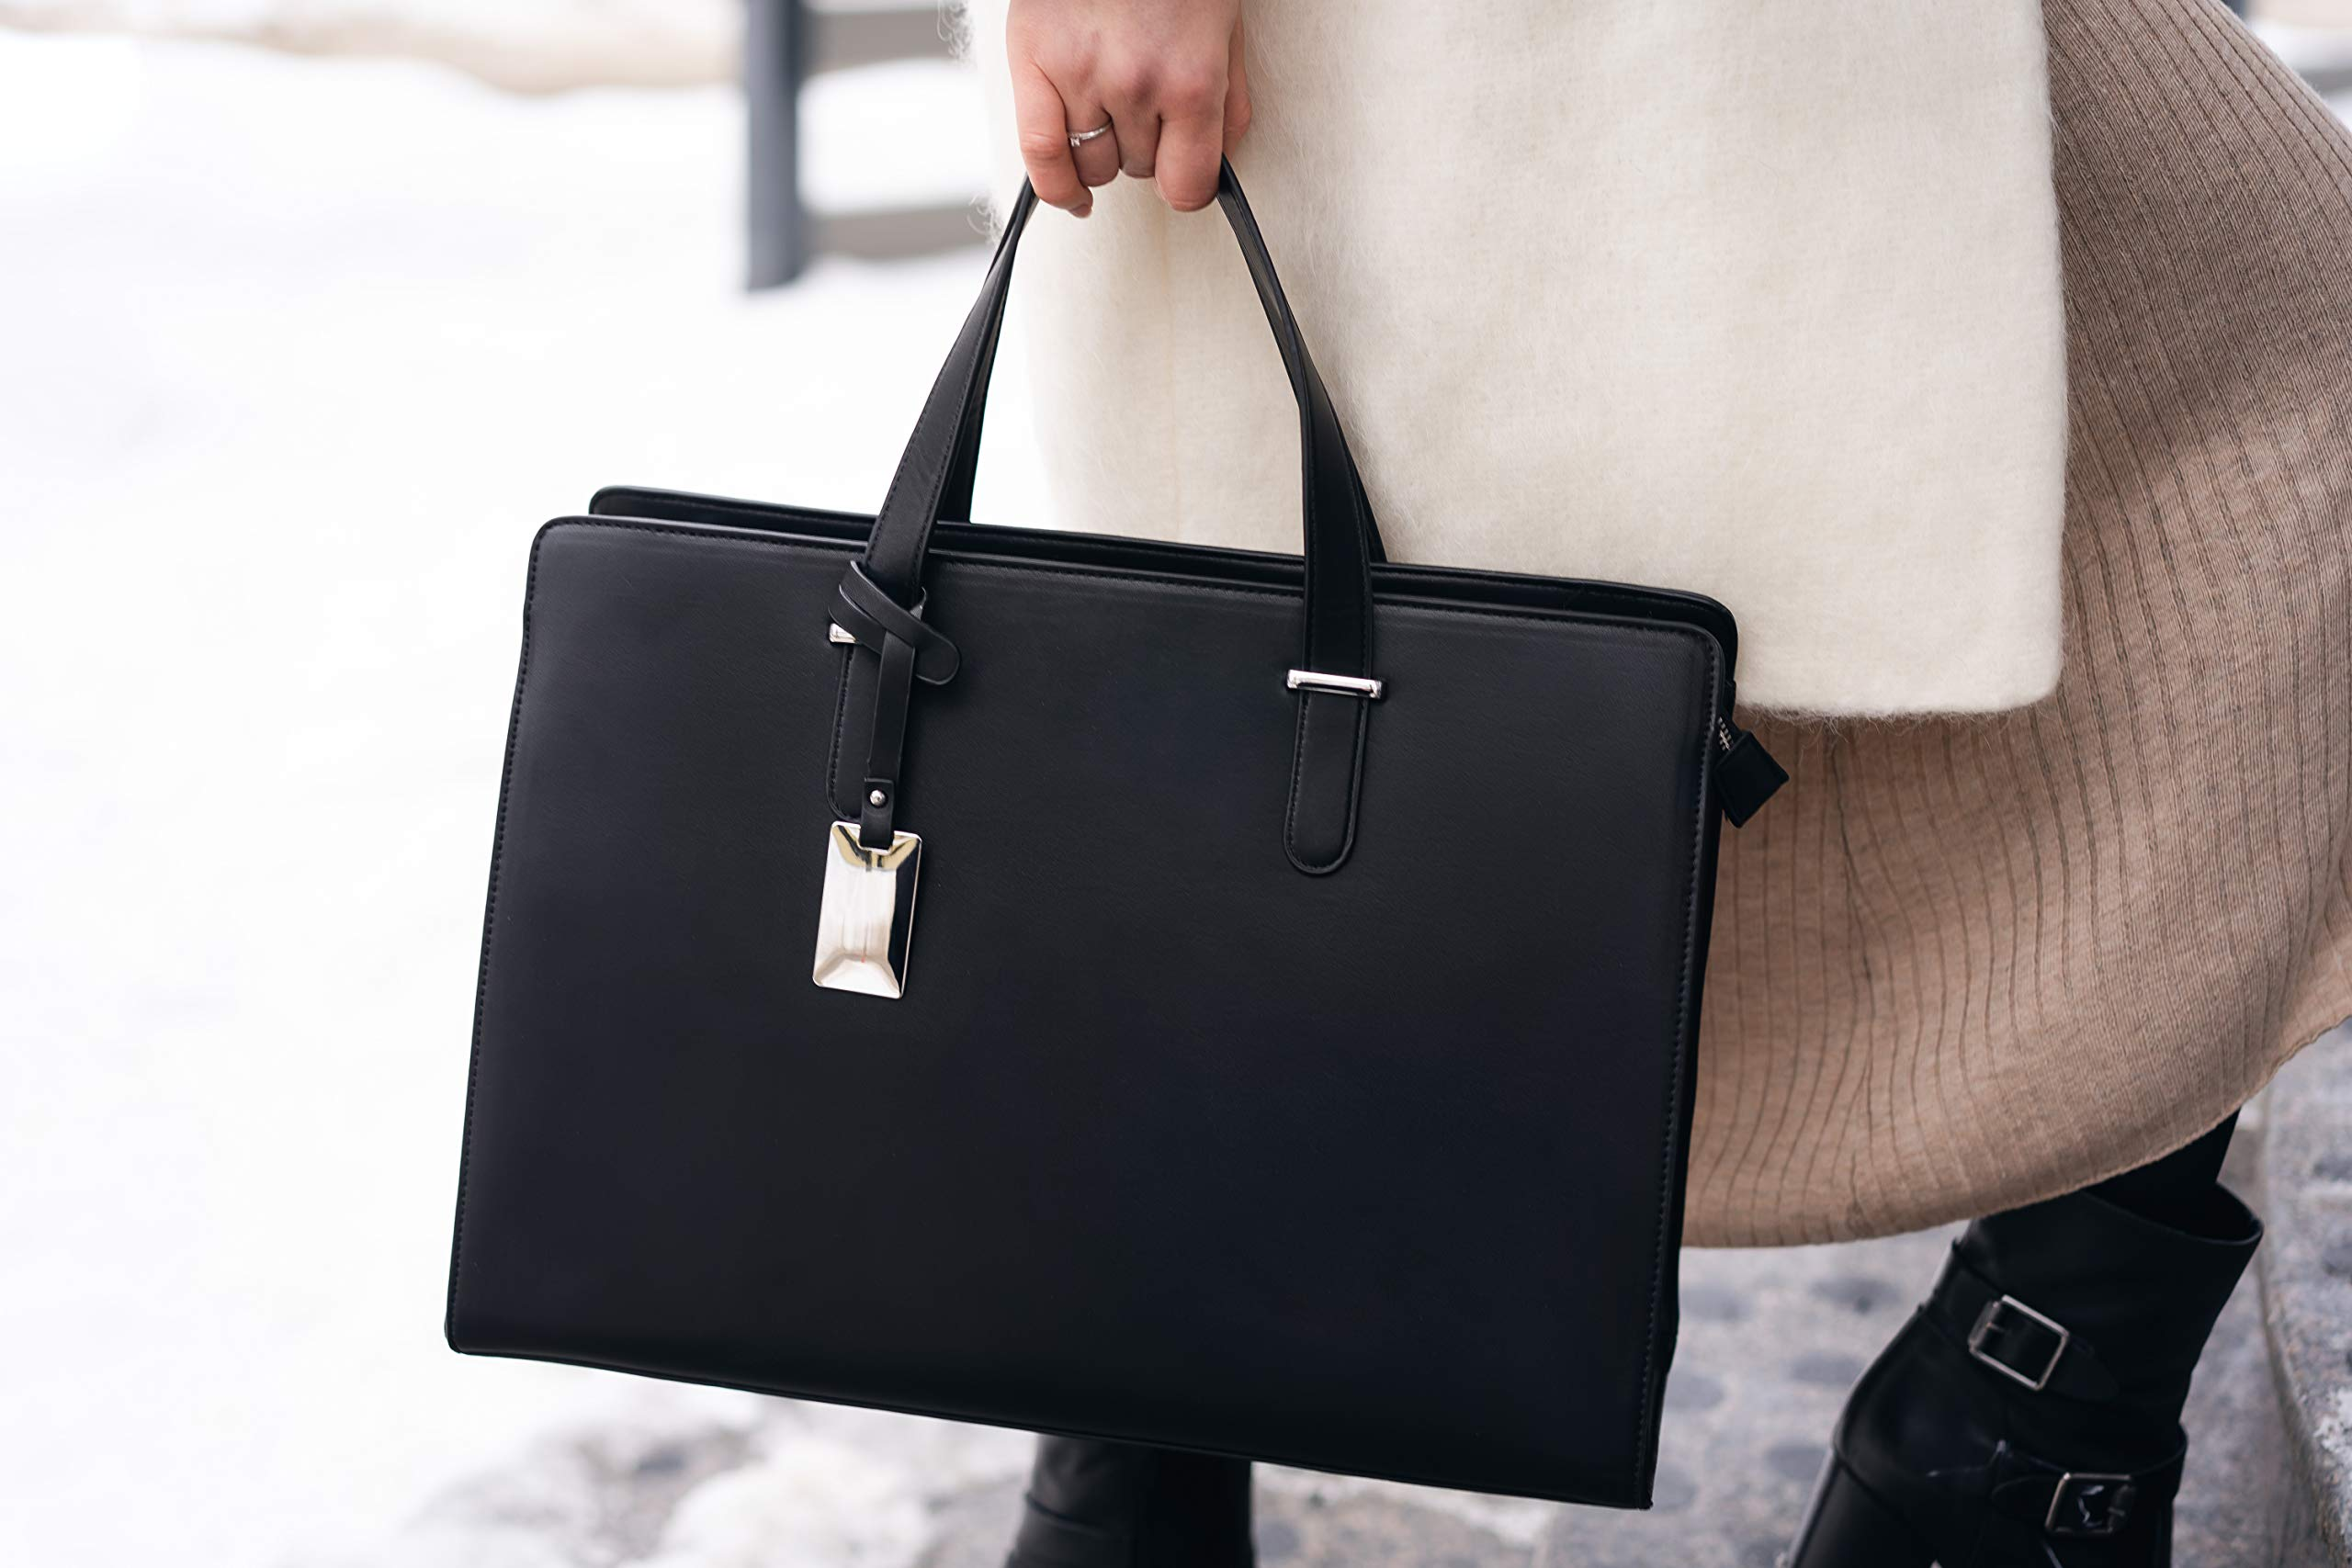 Computer Bag for Women - Ideal Laptop Tote Bag to Keep Your Business Documents, Laptop & Notebook Safe, Unique & Practical Laptop Accessories (Black) by BLONS California (Image #10)